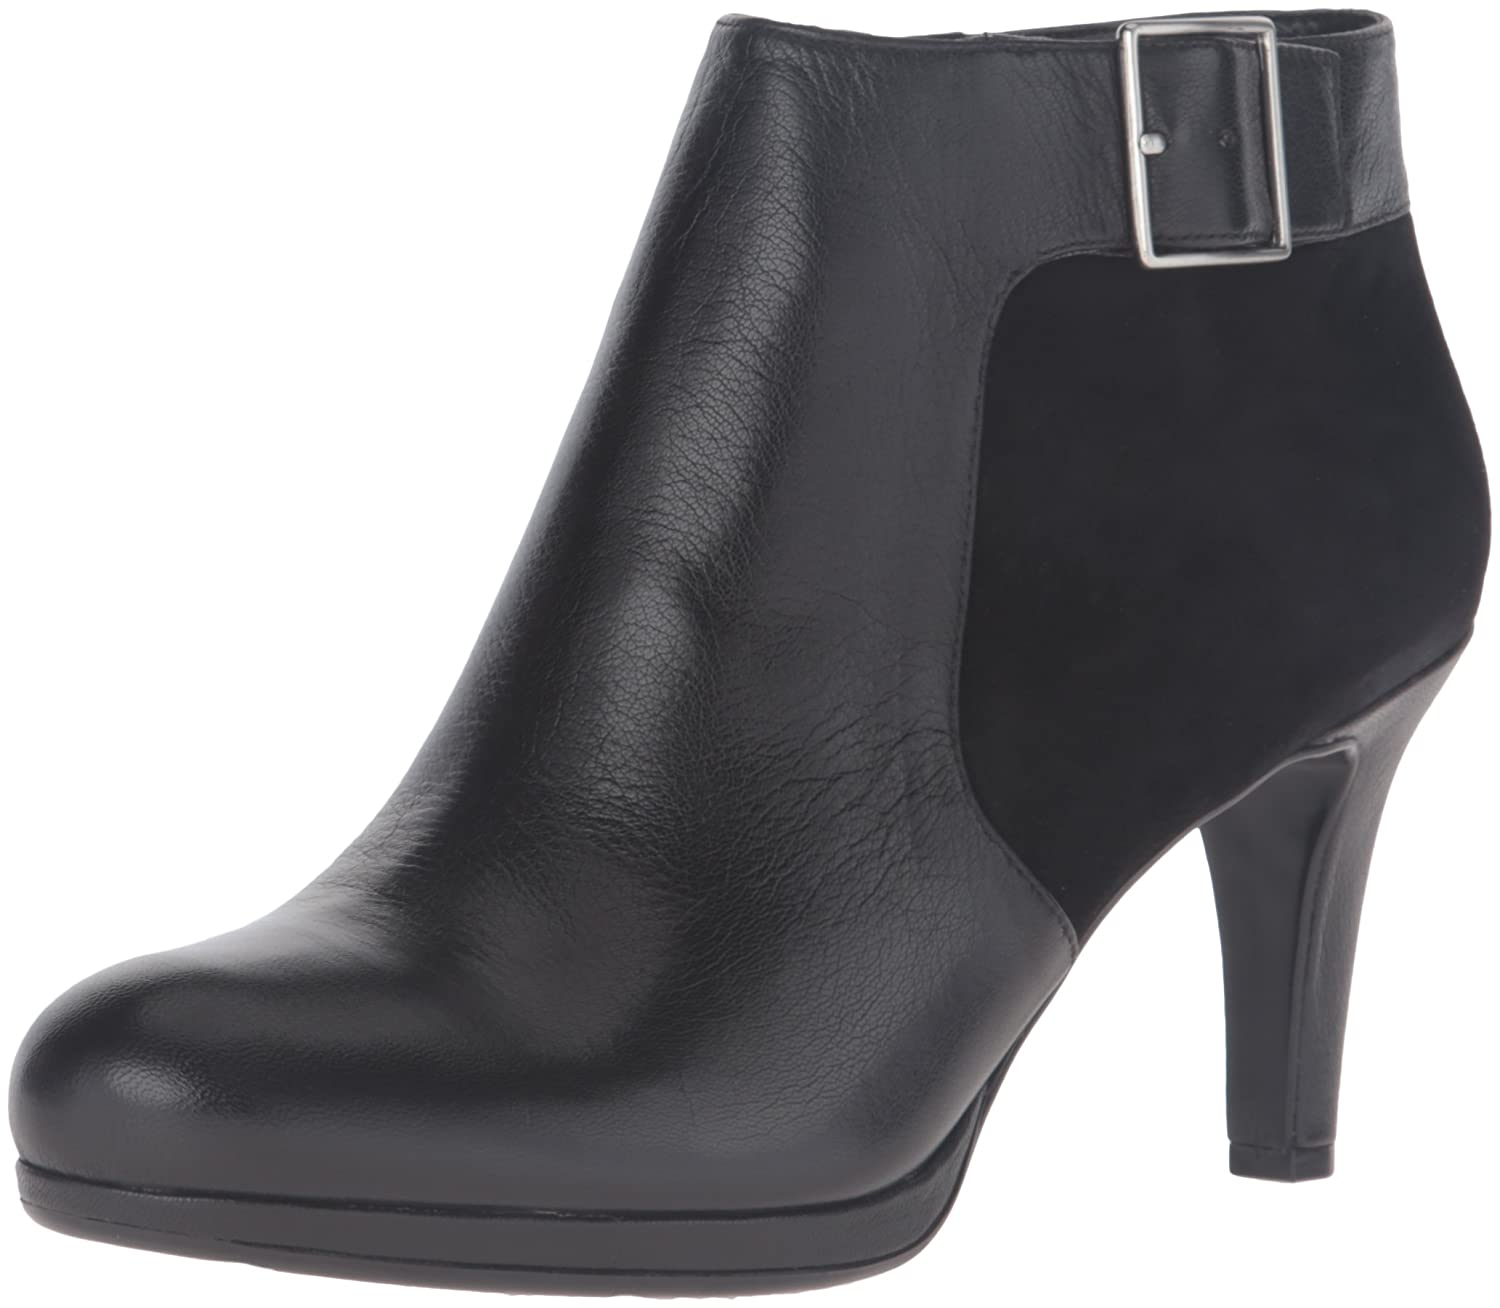 Naturalizer Women's Maureen Ankle Bootie B00UVAH7V4 10 B(M) US|Black